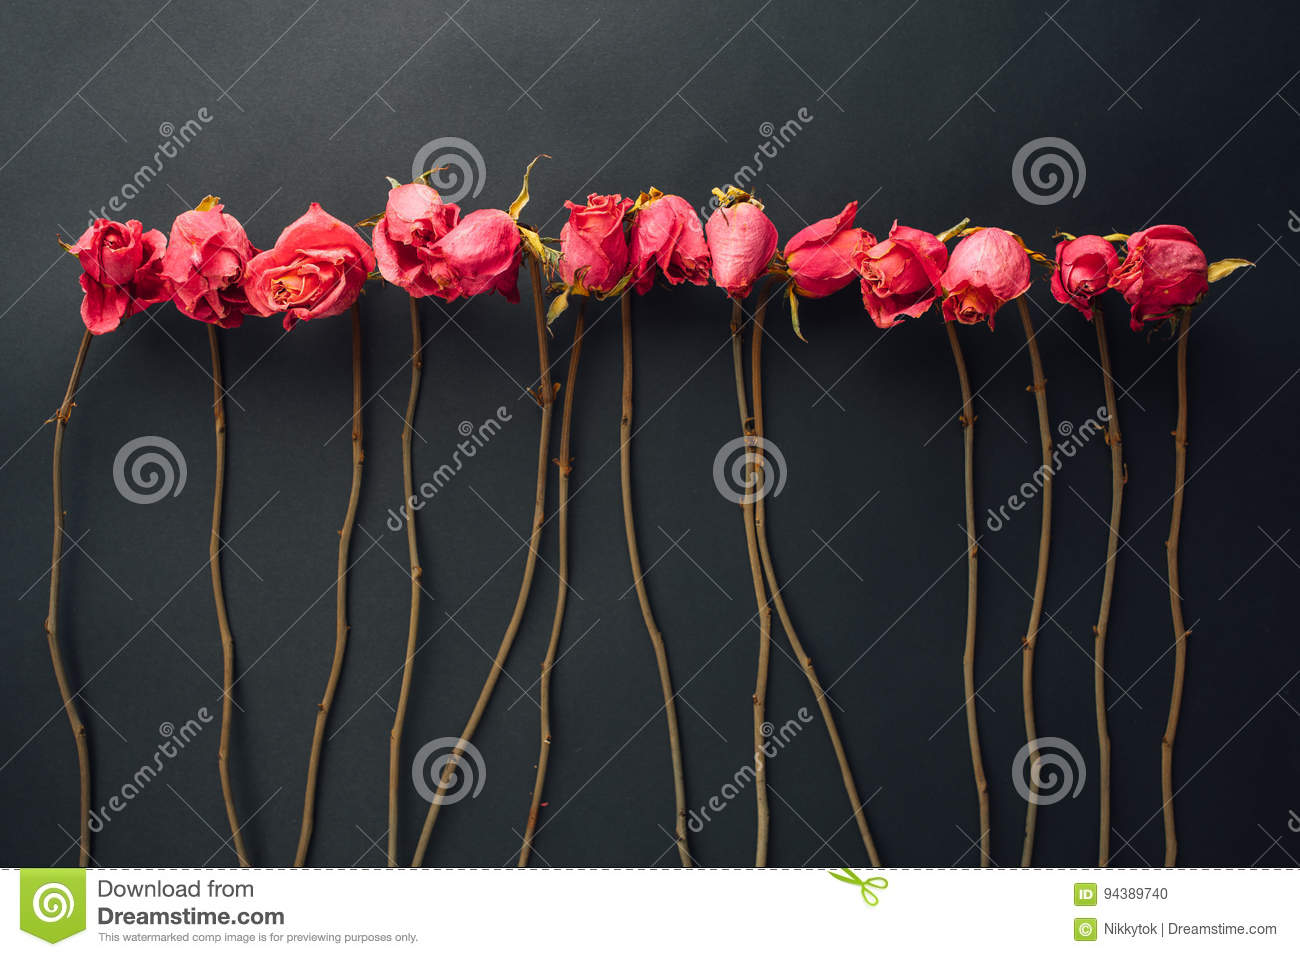 Goth Style Dry Roses Stock Photo Image Of Aesthetic 94389740